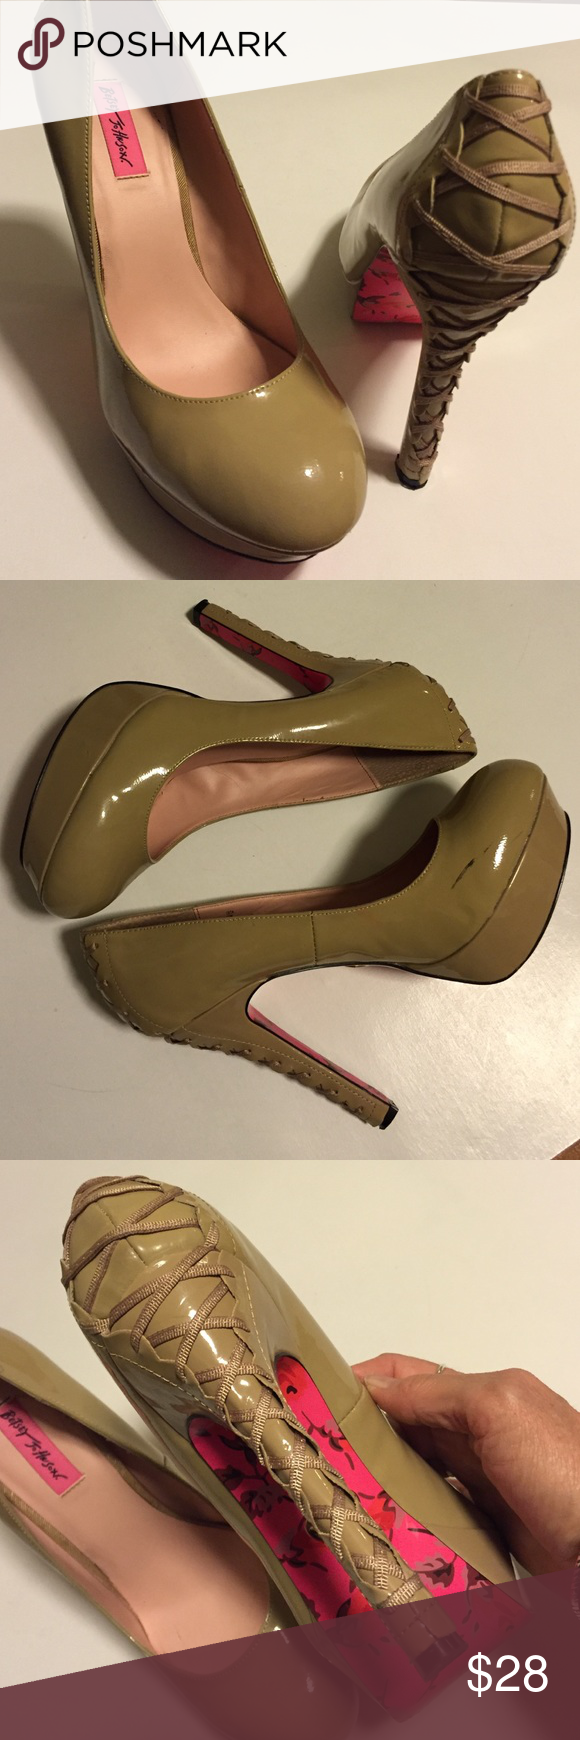 "EUC Betsey Johnson leather heels Excellent condition; These shoes are not for the faint of heart! Fierce!!! Beige patent leather with 5"" laced heels and 1 1/2"" platform. Actually more comfortable than you'd think because of the platform size. There are a few black scuff marks as shown. These are your next pair of party shoes!! Smoke-free/pet-free home. Betsey Johnson Shoes Heels"